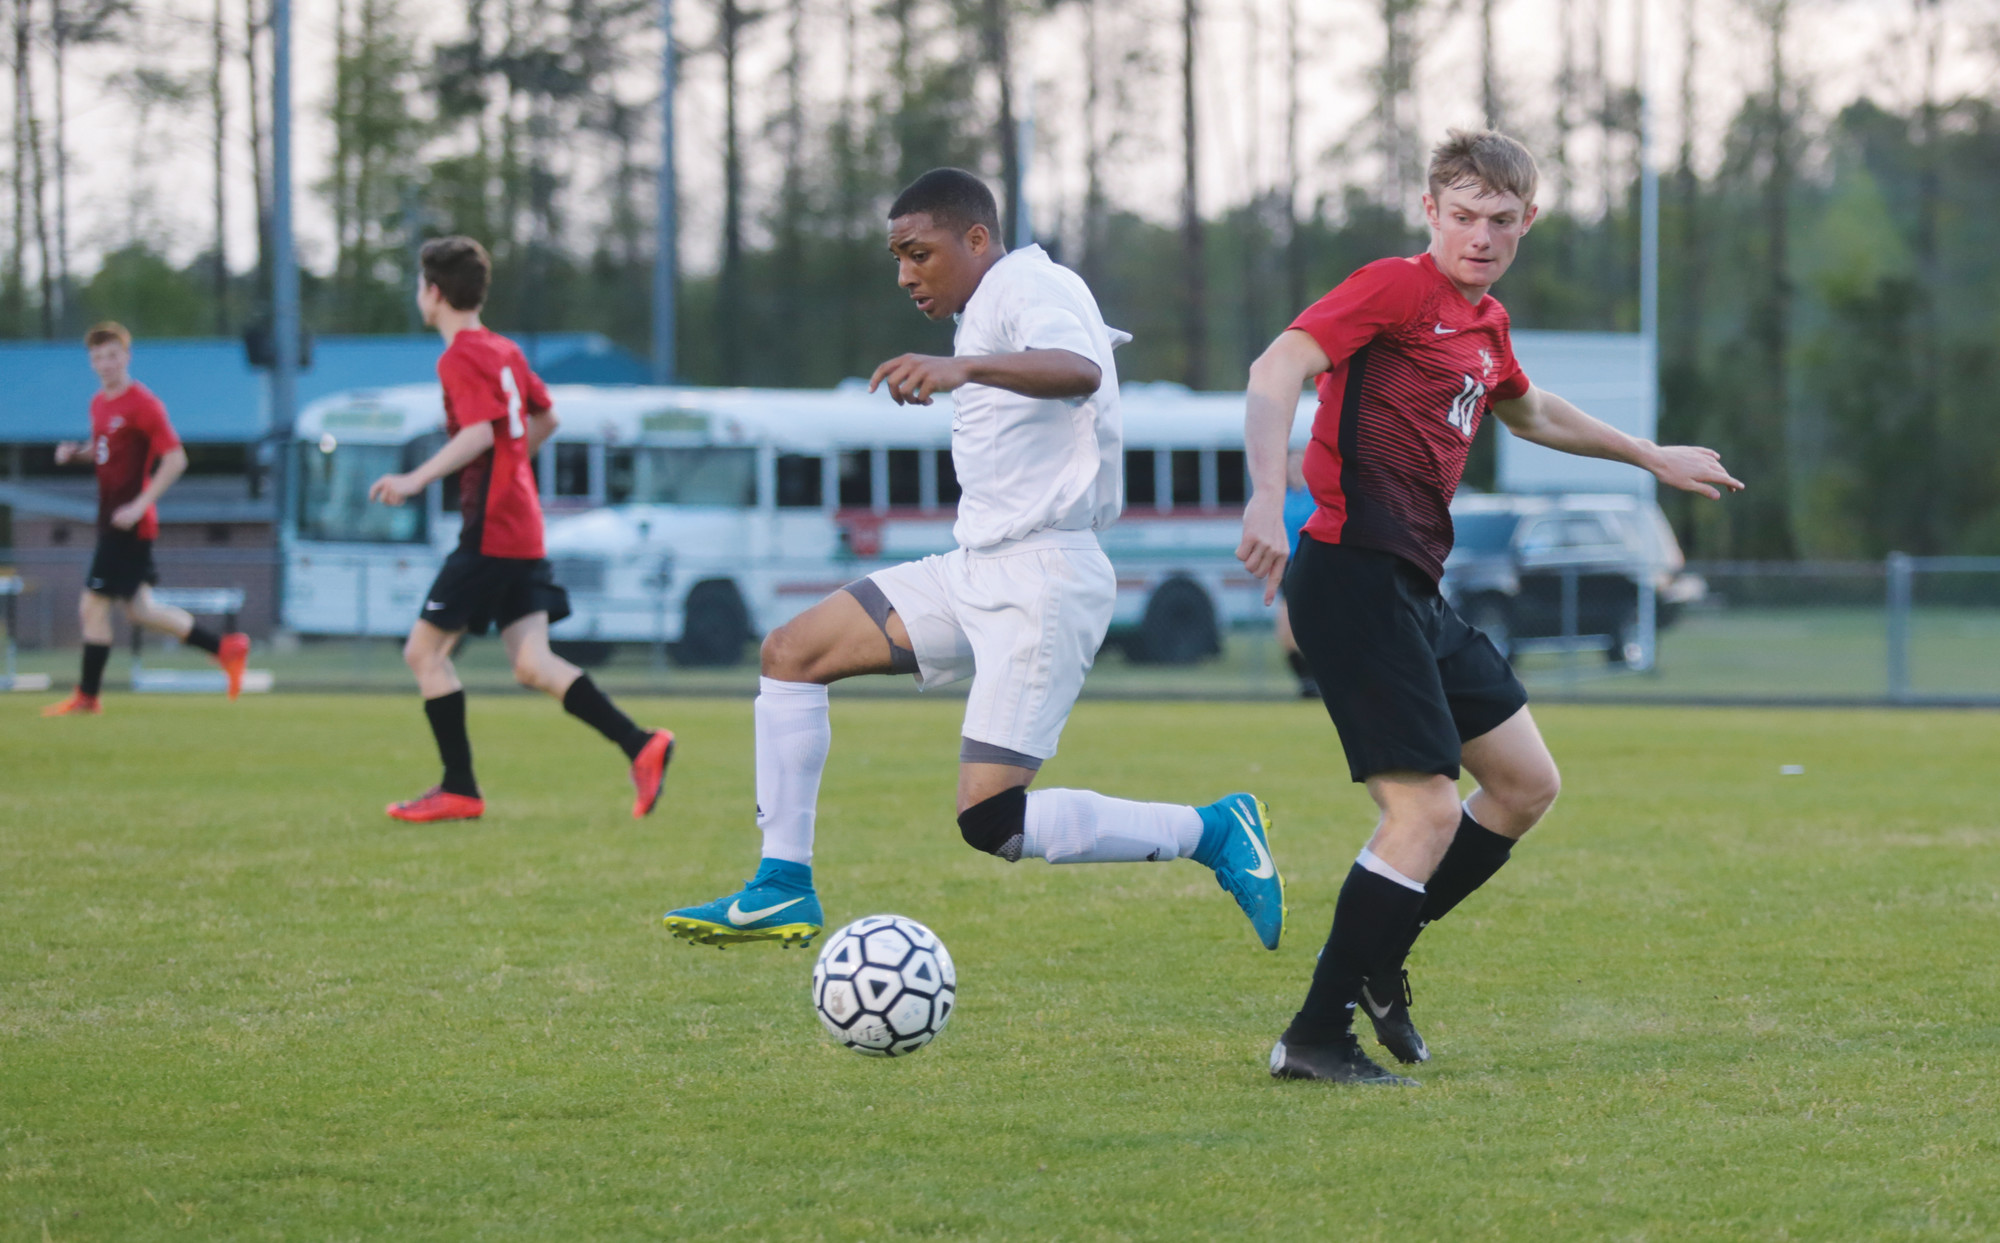 Crestwood's Deontay Singleton gets away from a Hartsville defender during the Knights' 2-0 loss to the region-leading Foxes on Friday at the Crestwood field.